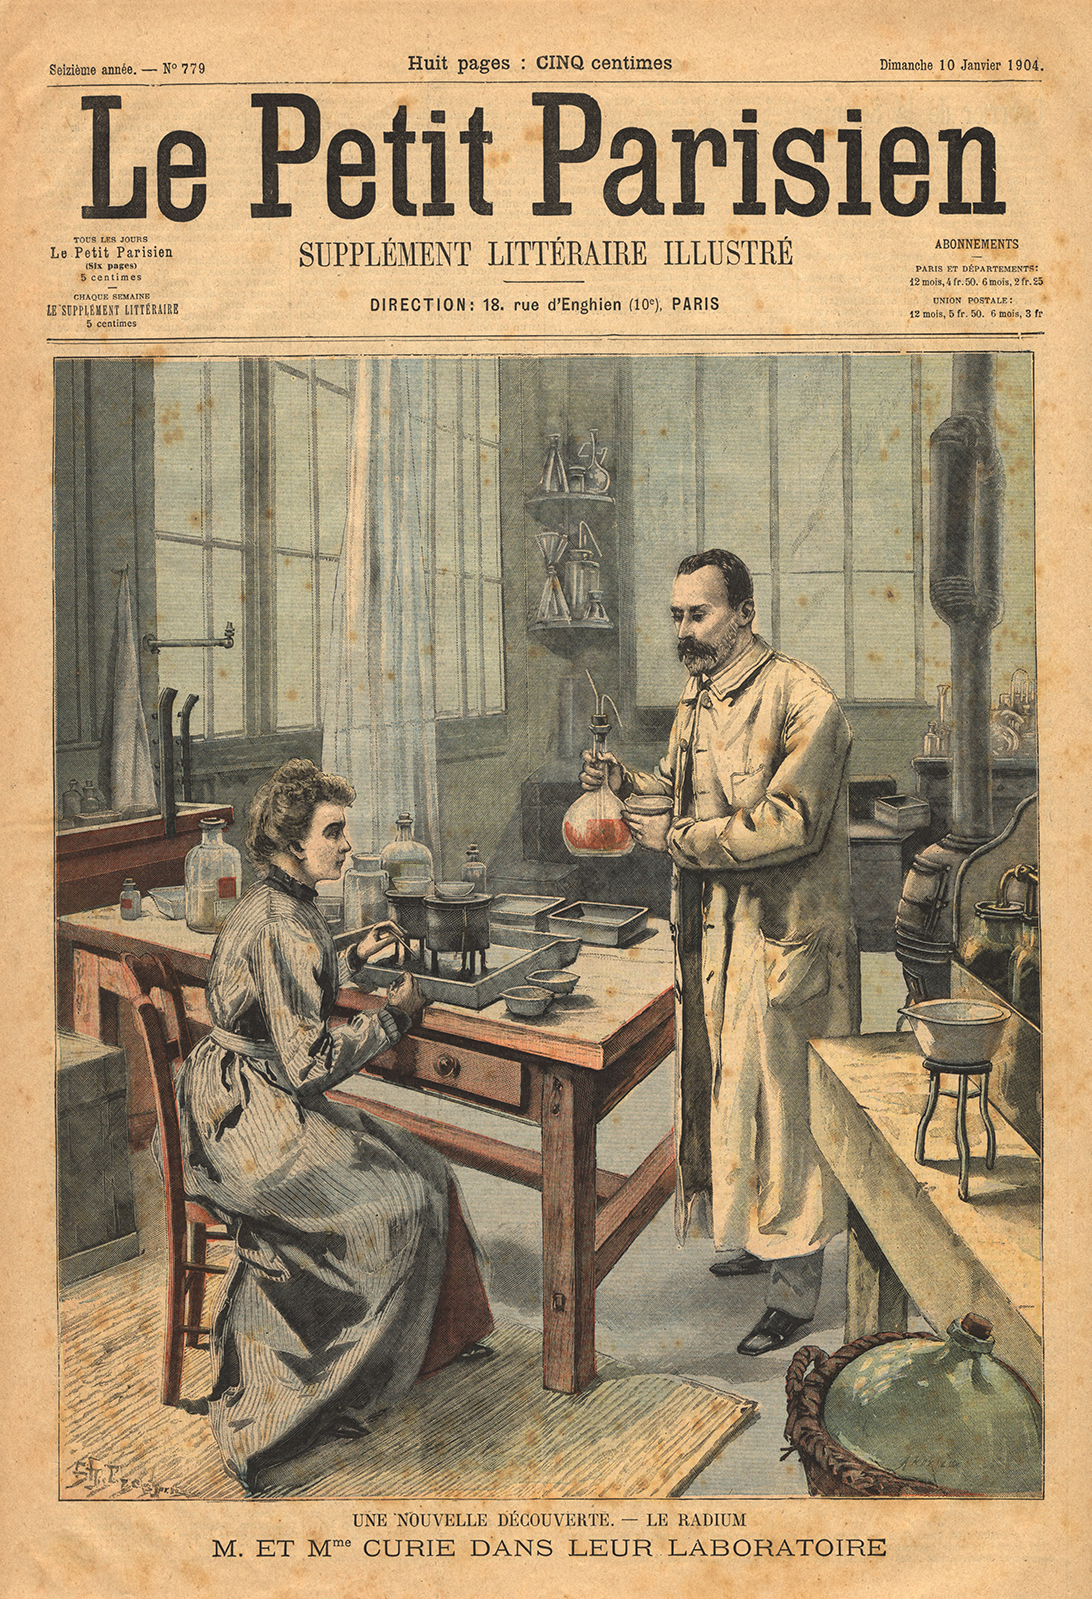 Color illustration of the Curies in their lab